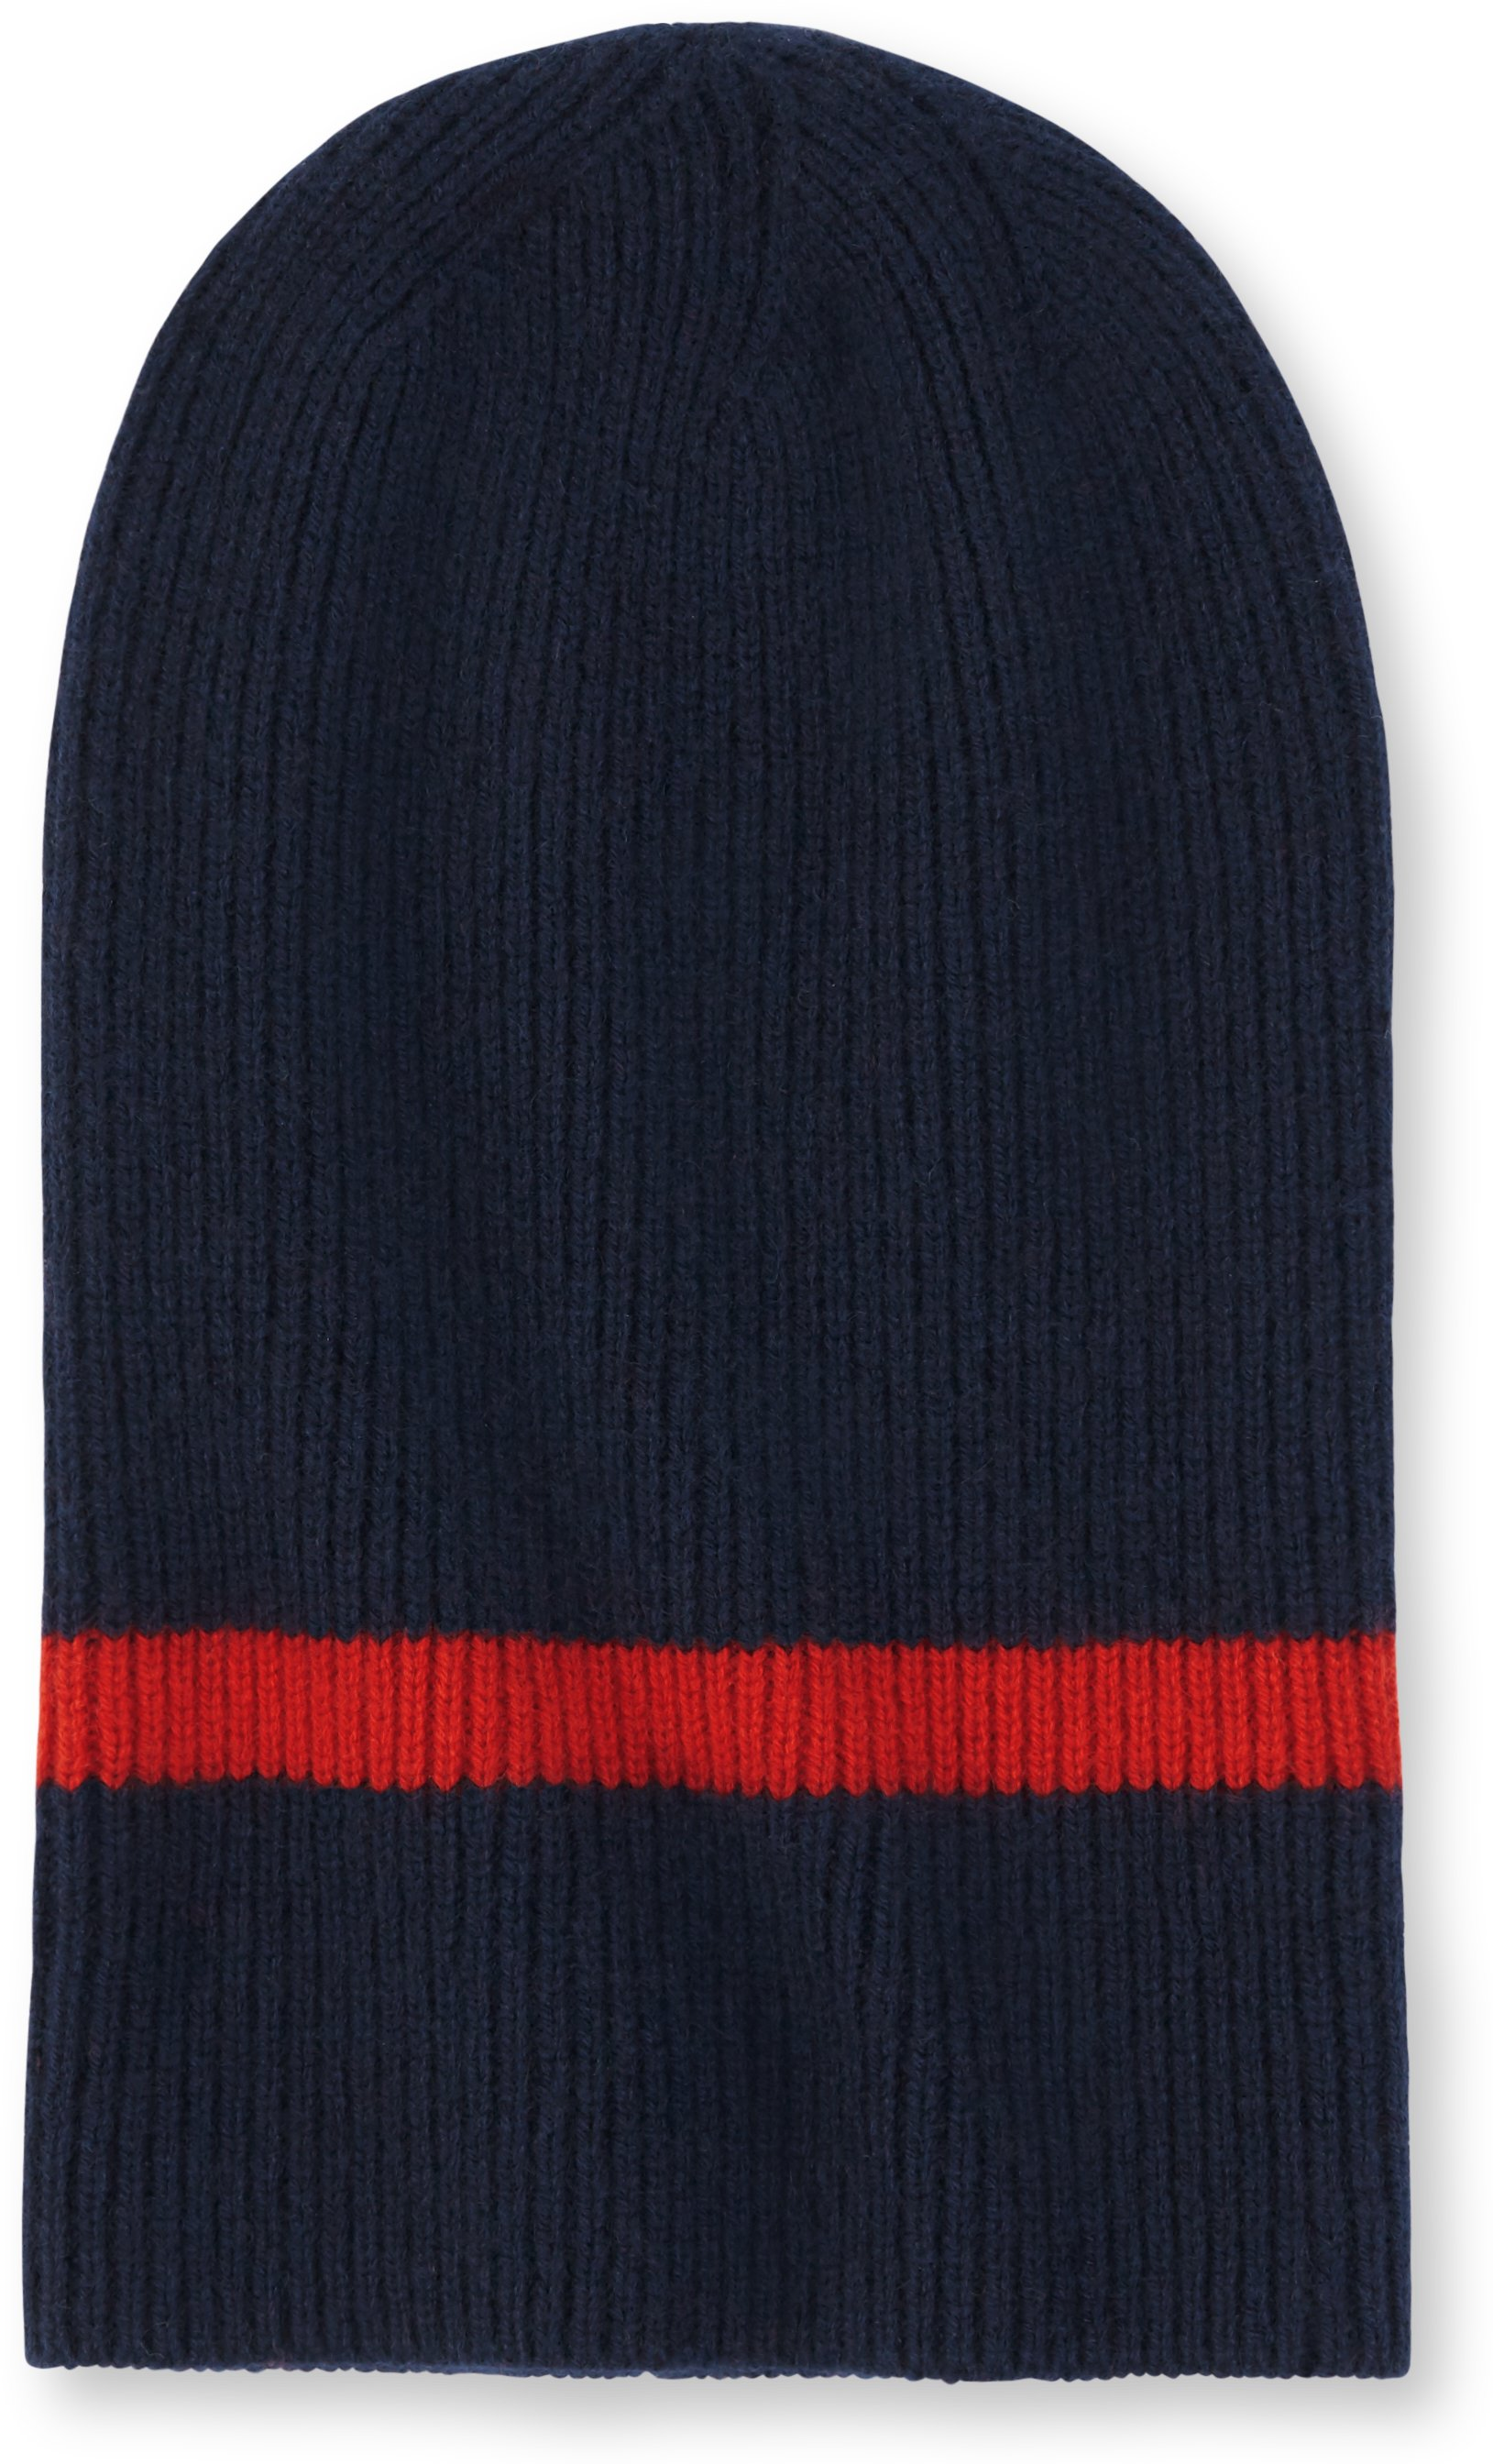 UAS Assembly Slouchy Beanie, Navy, zoomed image